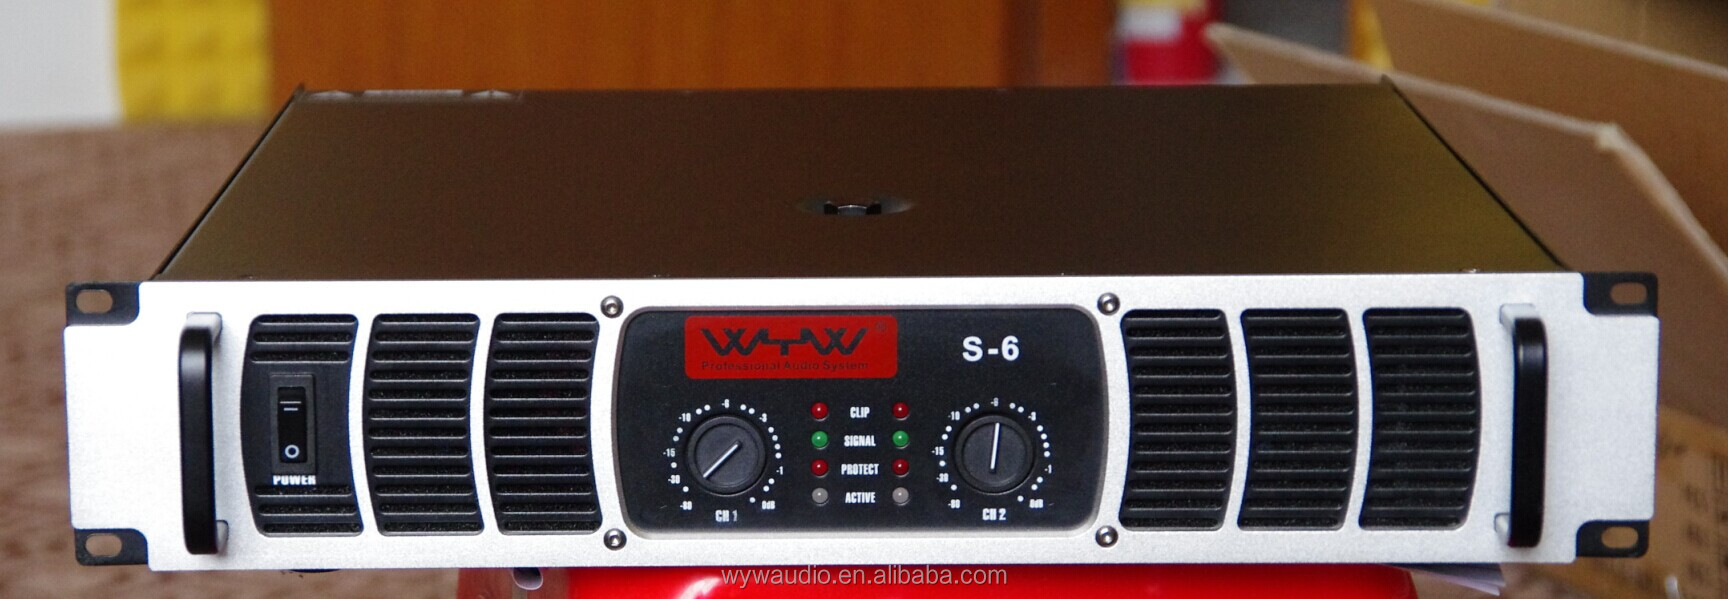 600W ,dual channel ,Professional audio power amplifier